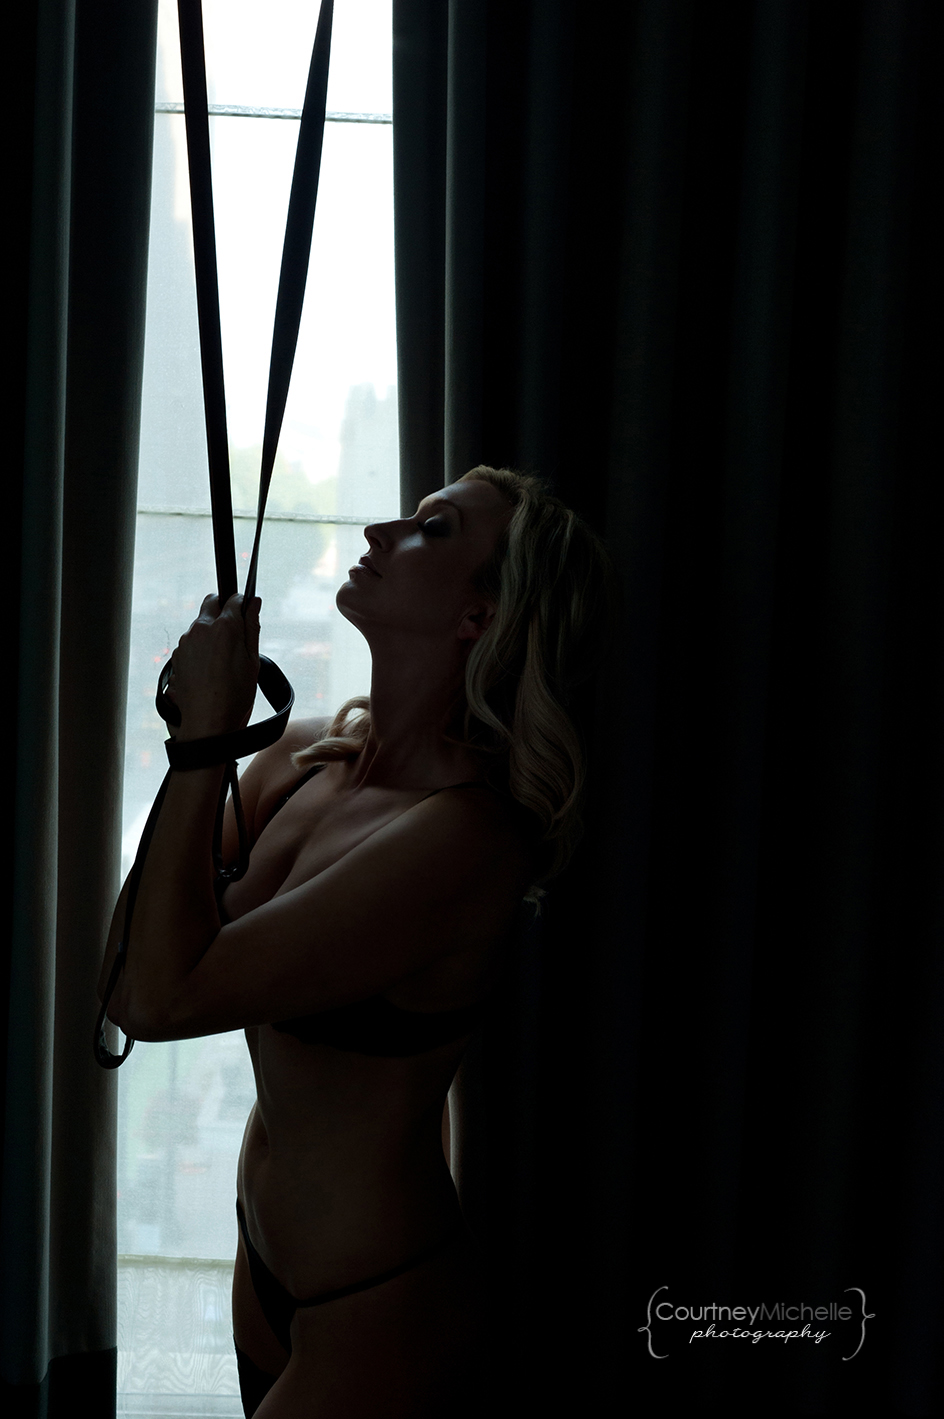 woman-in-lingerie-silhouette-next-to-window-light-and-curtains-chicago-boudoir-photography-by-courtney-laper.jpg